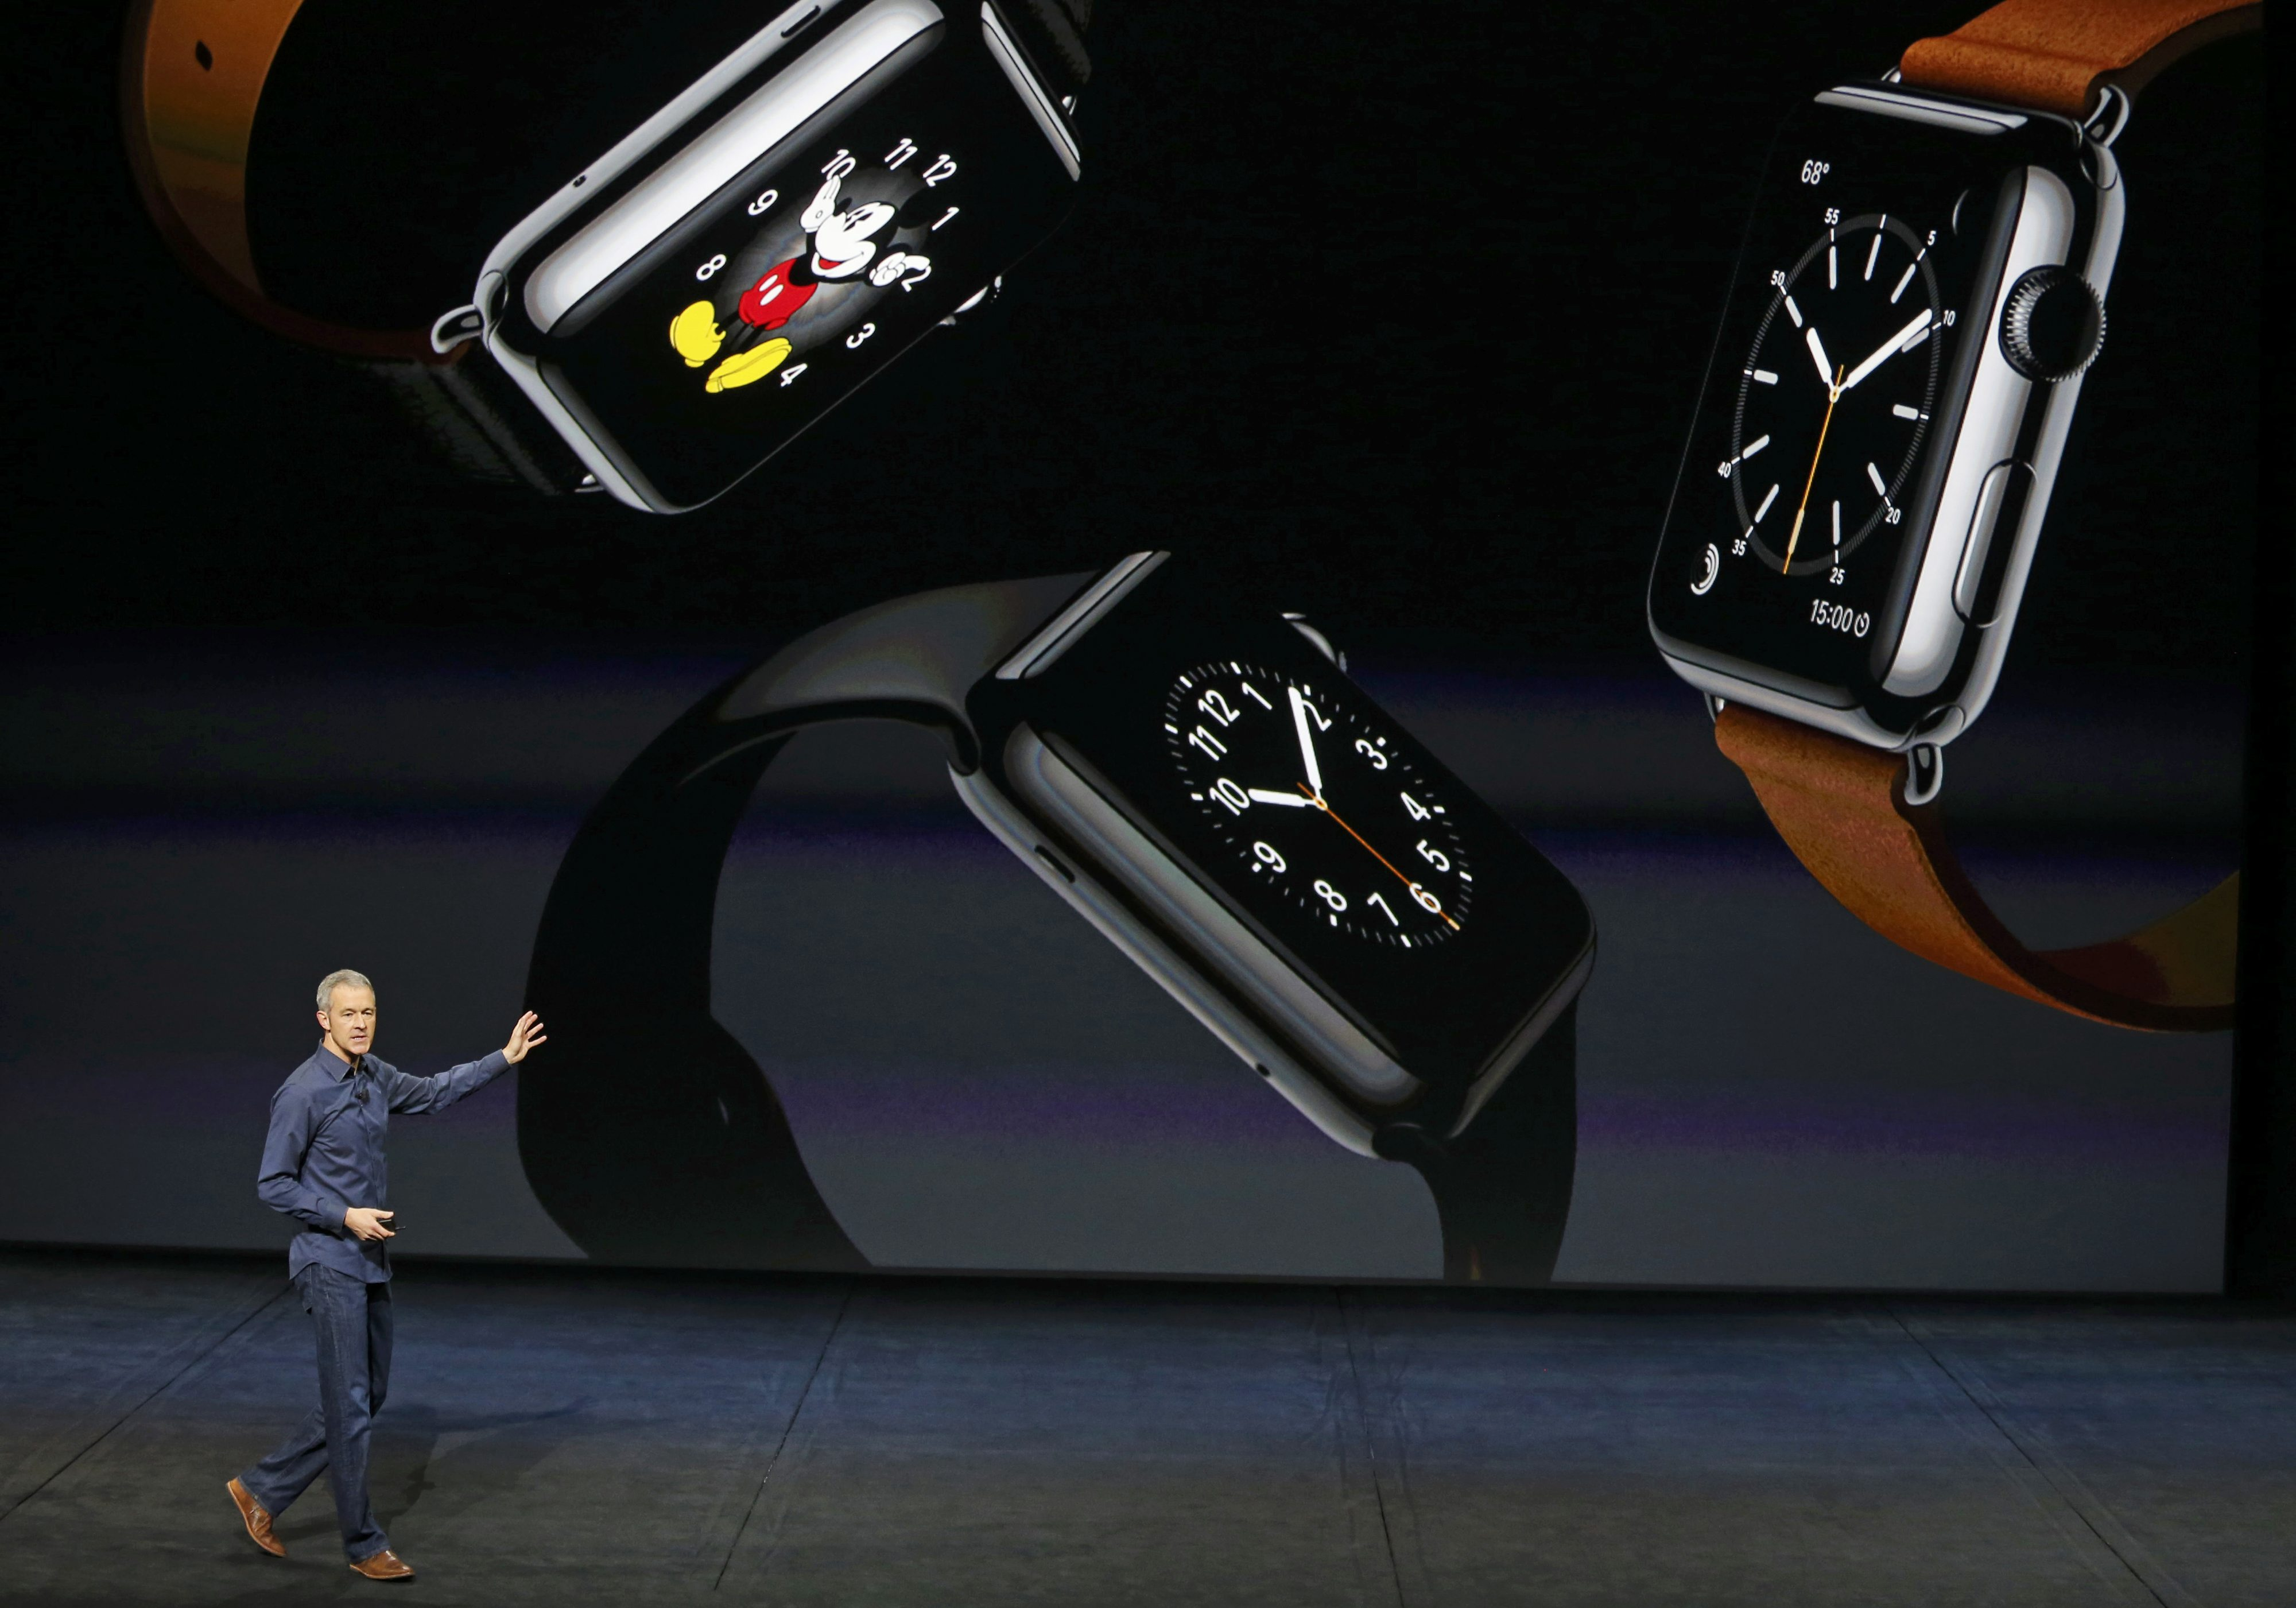 Jeff Williams Apple's senior vice president of Operations, speaks about new finishes for the Apple Watch during an Apple media event in San Francisco, California, September 9, 2015. Reuters/Beck Diefenbach